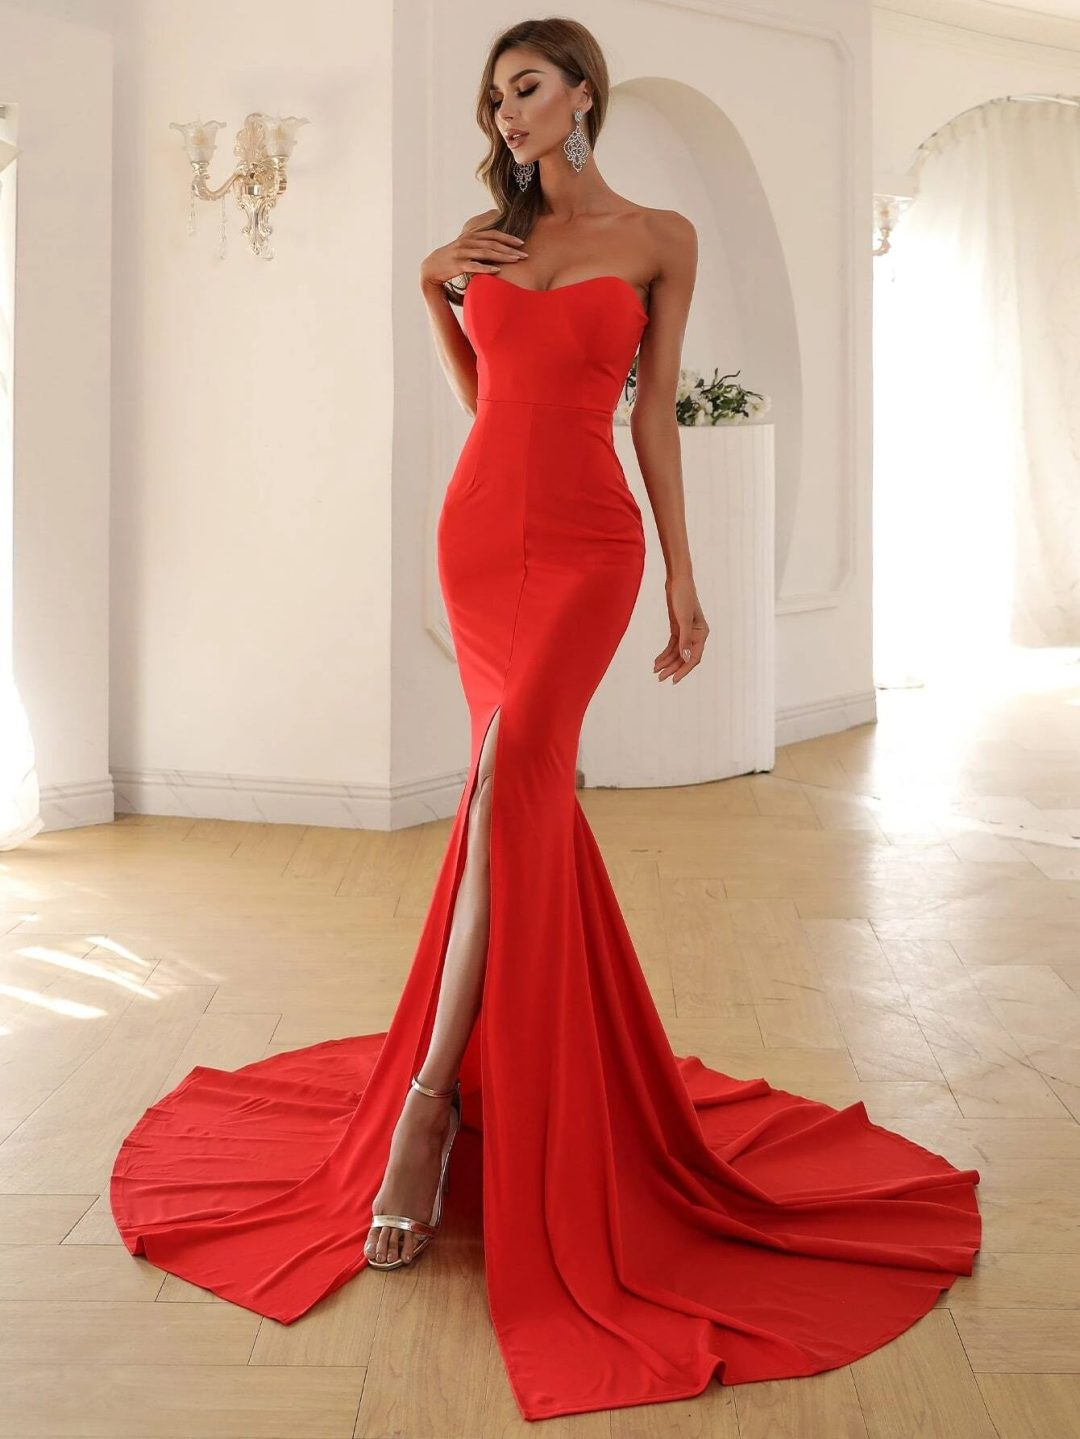 Affordable red prom dress with mermaid tail